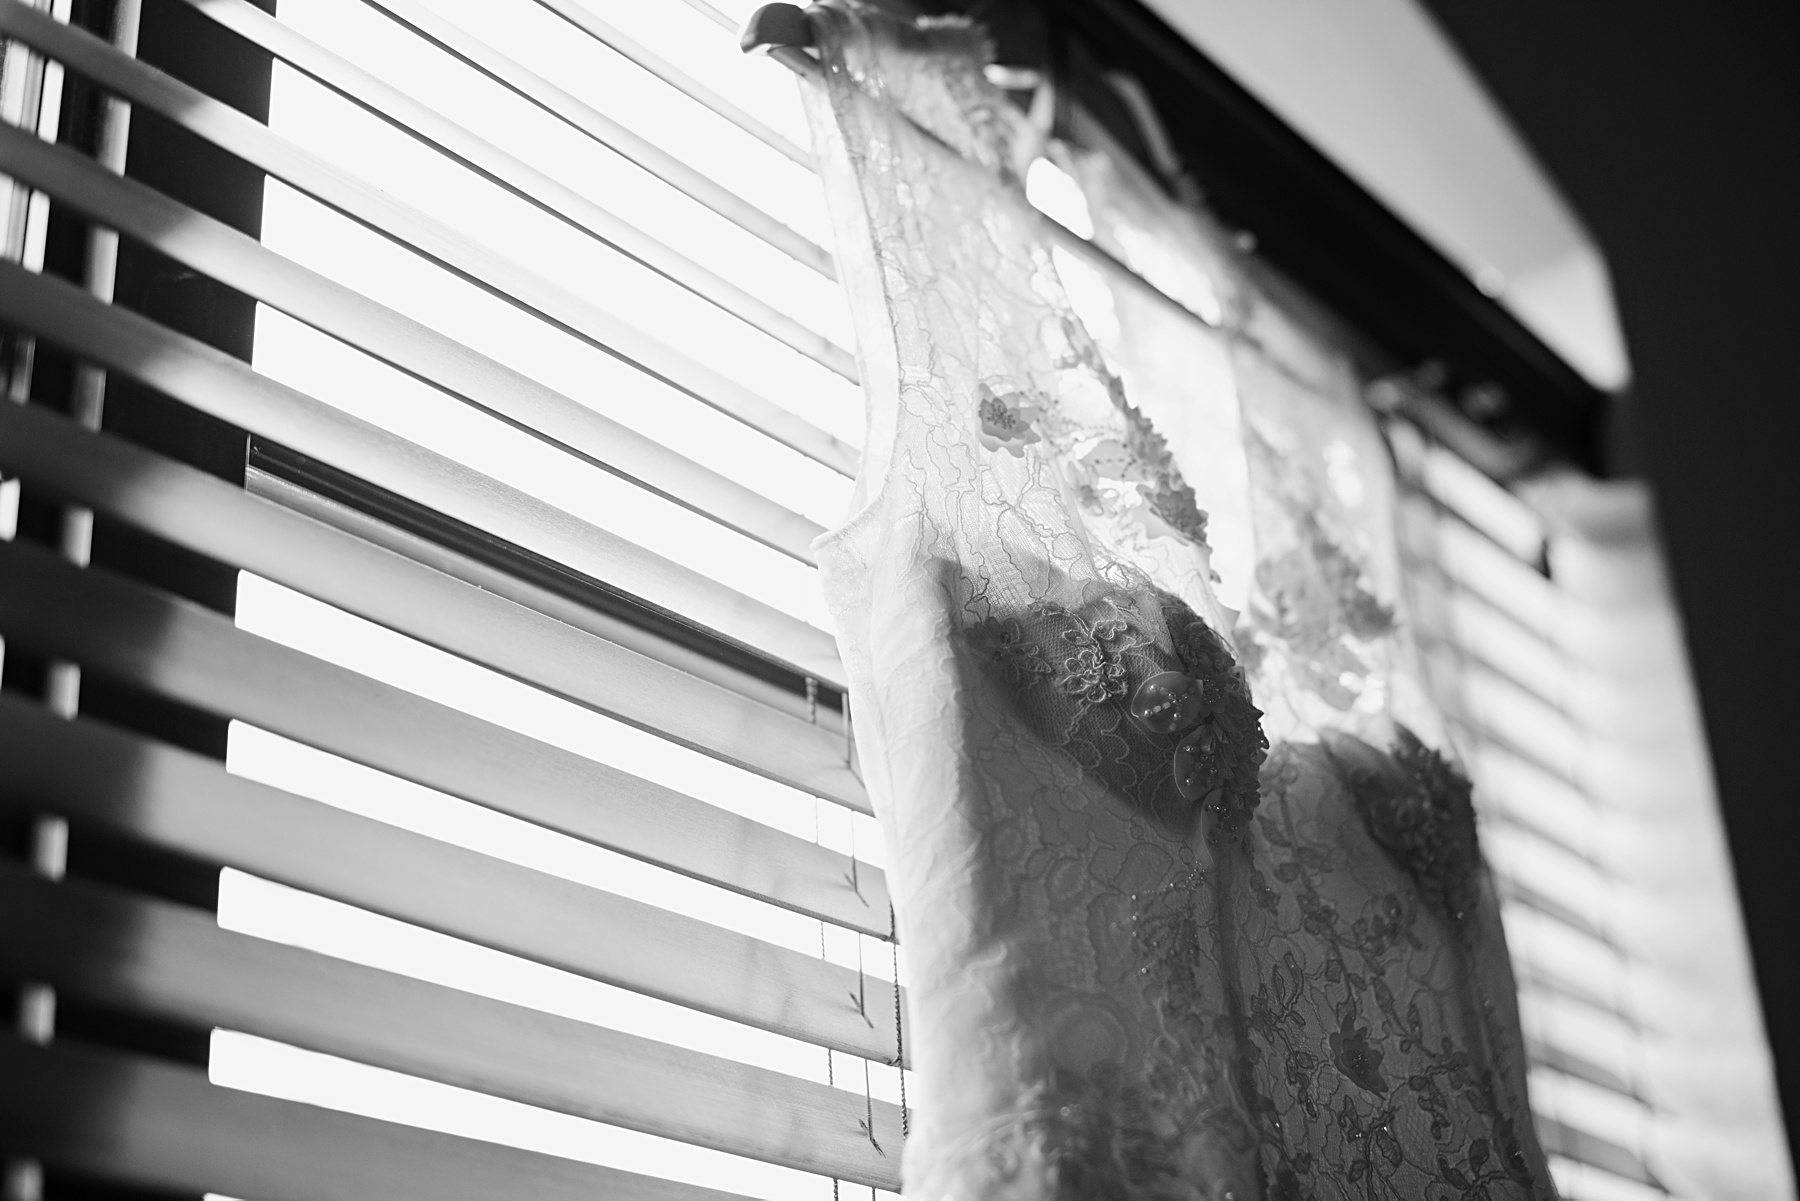 brides dress hangs in window